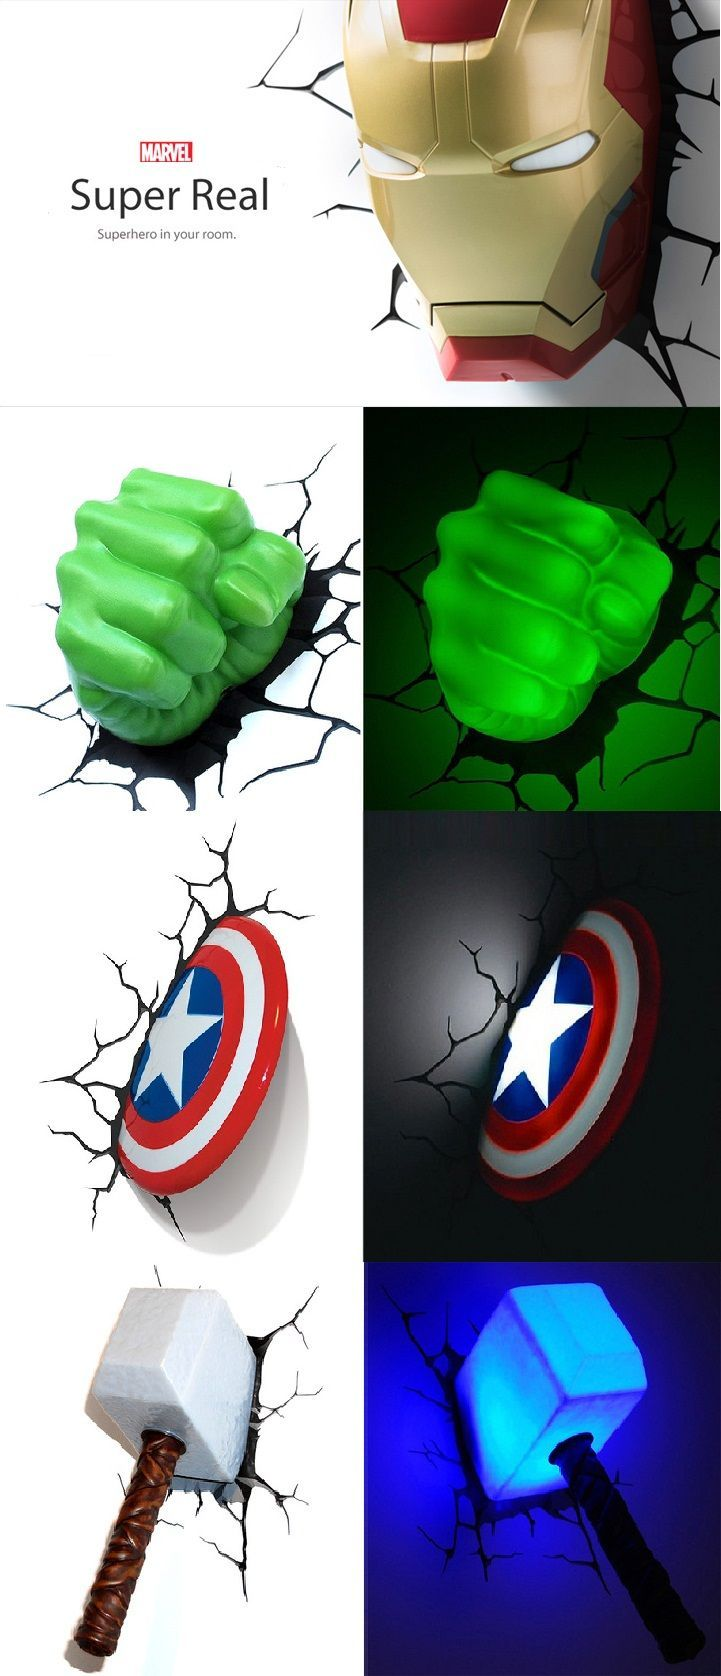 Awesome 3D Marvel Superhero Nightlights amp; Johnson Uh Becca WHY DO WE NOT HAVE THESE!?